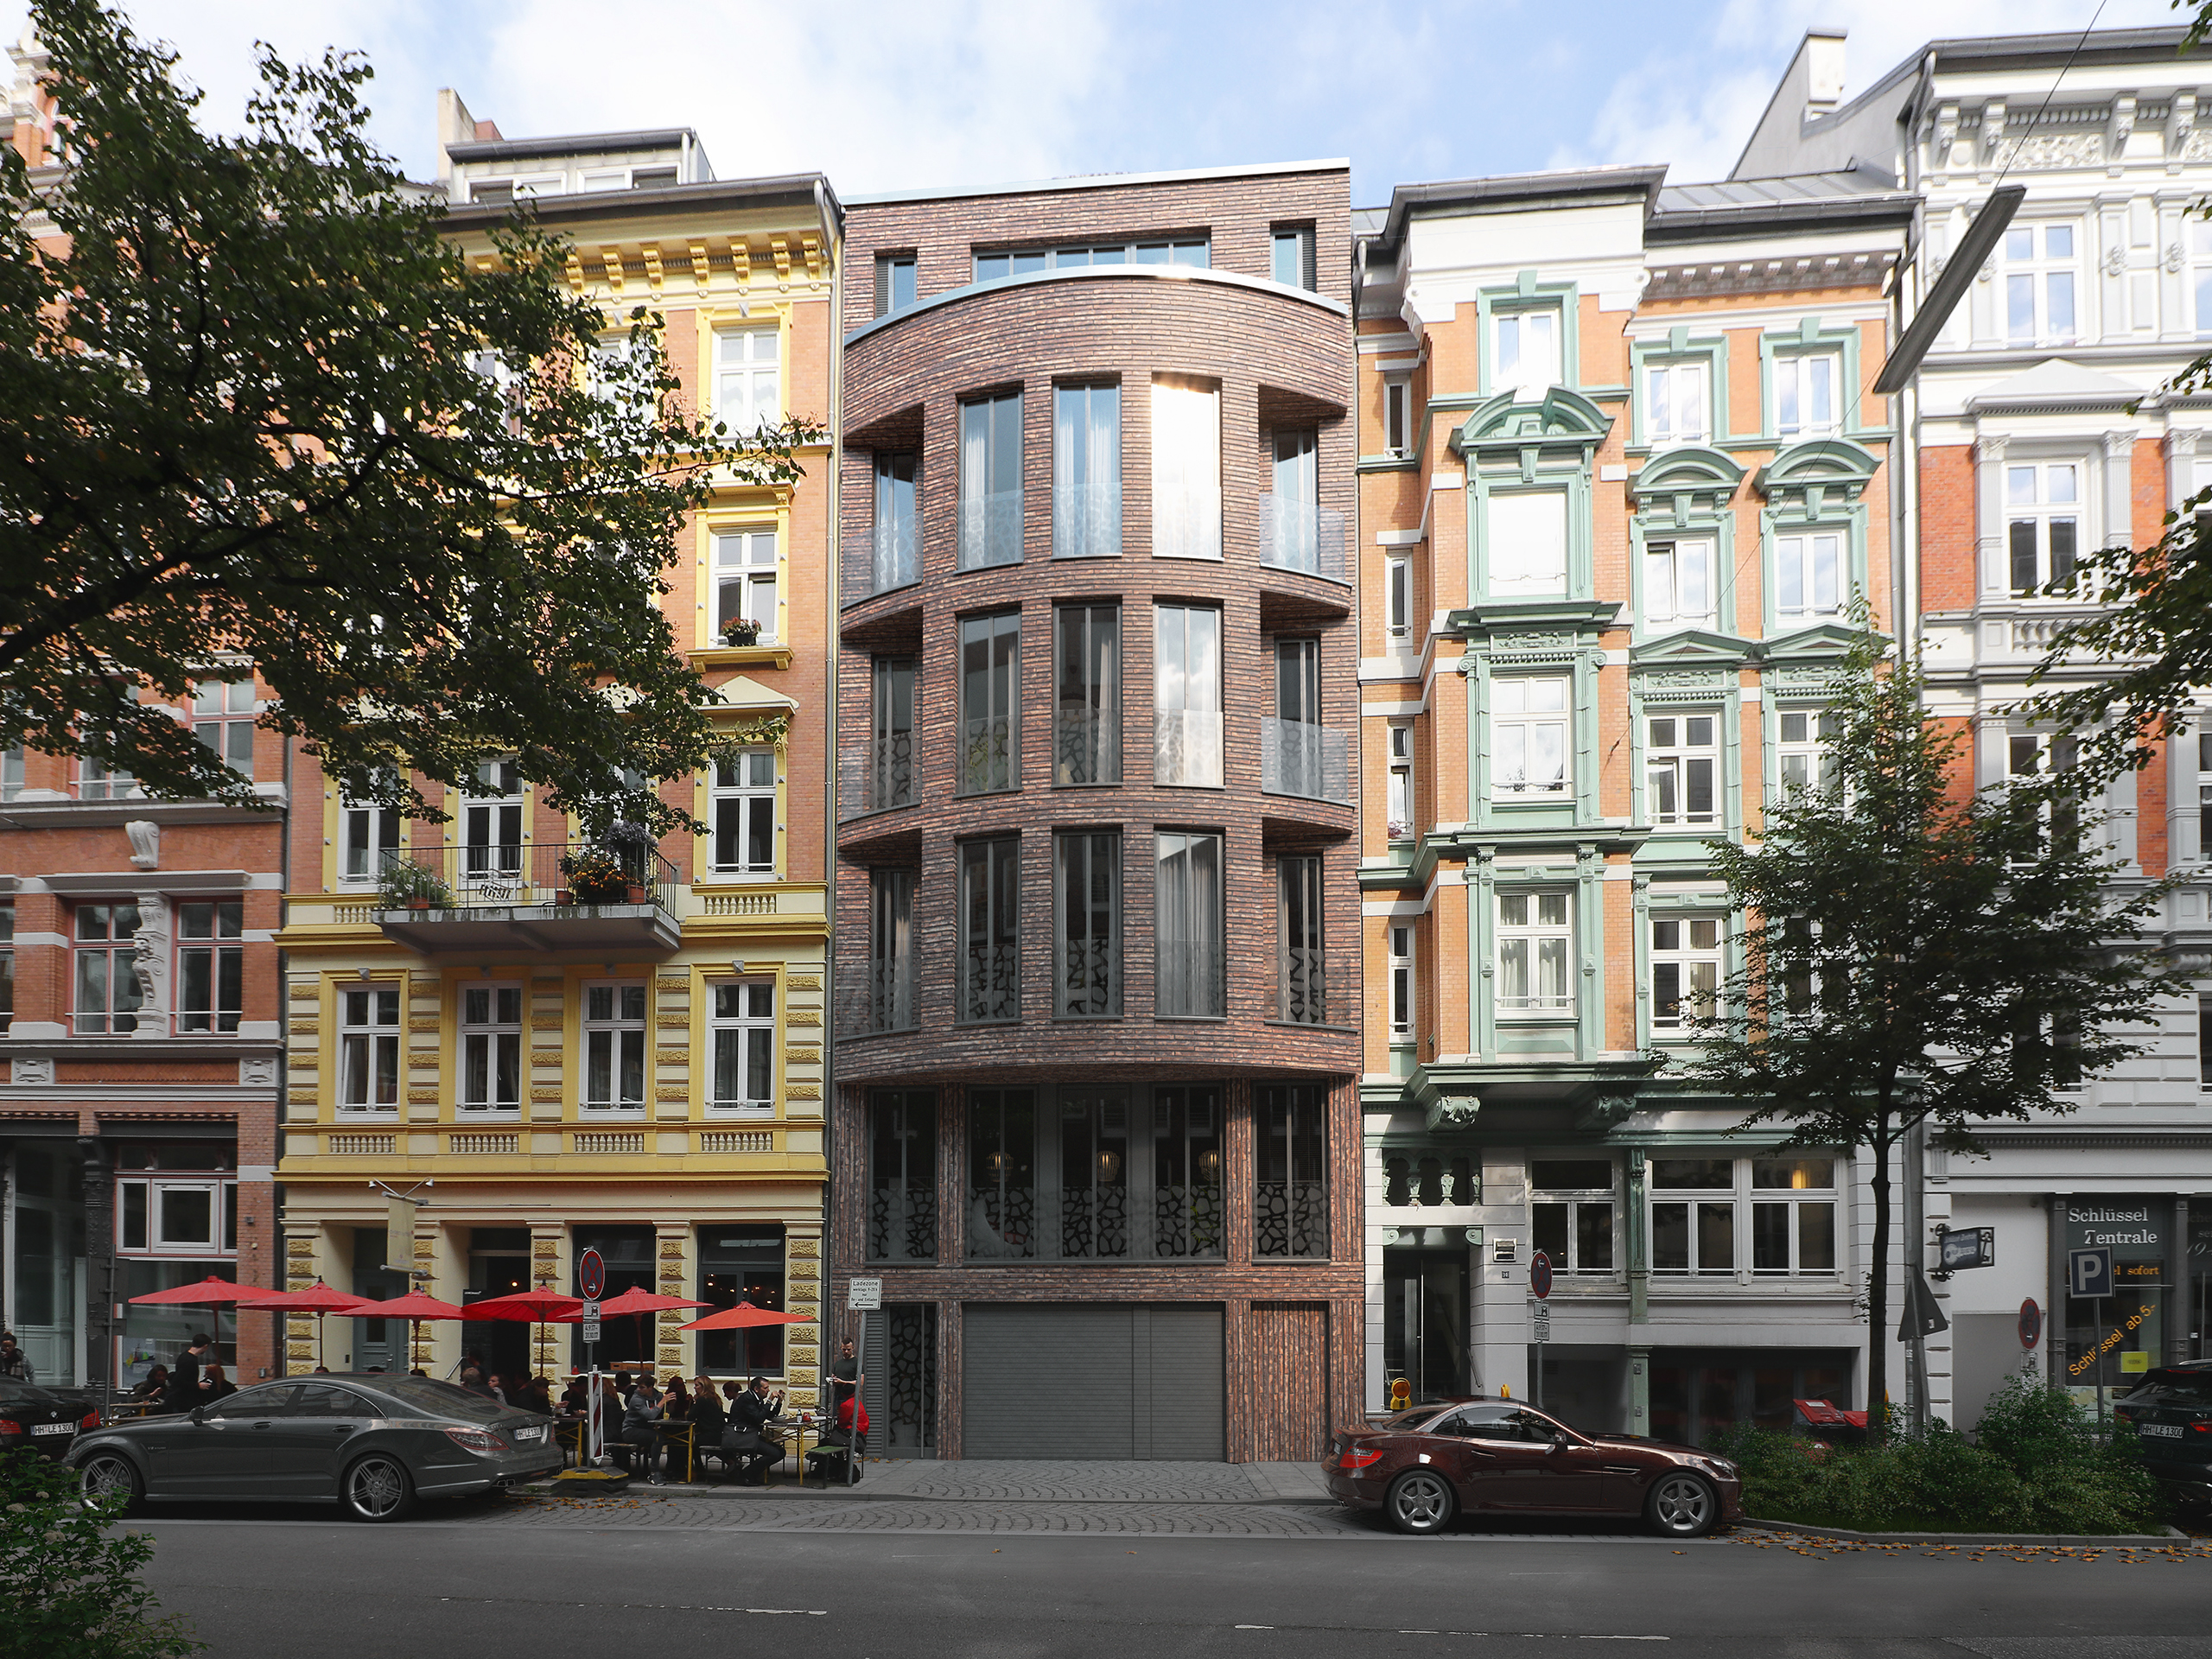 Schopenstehl - Lichtecht, Hamburg